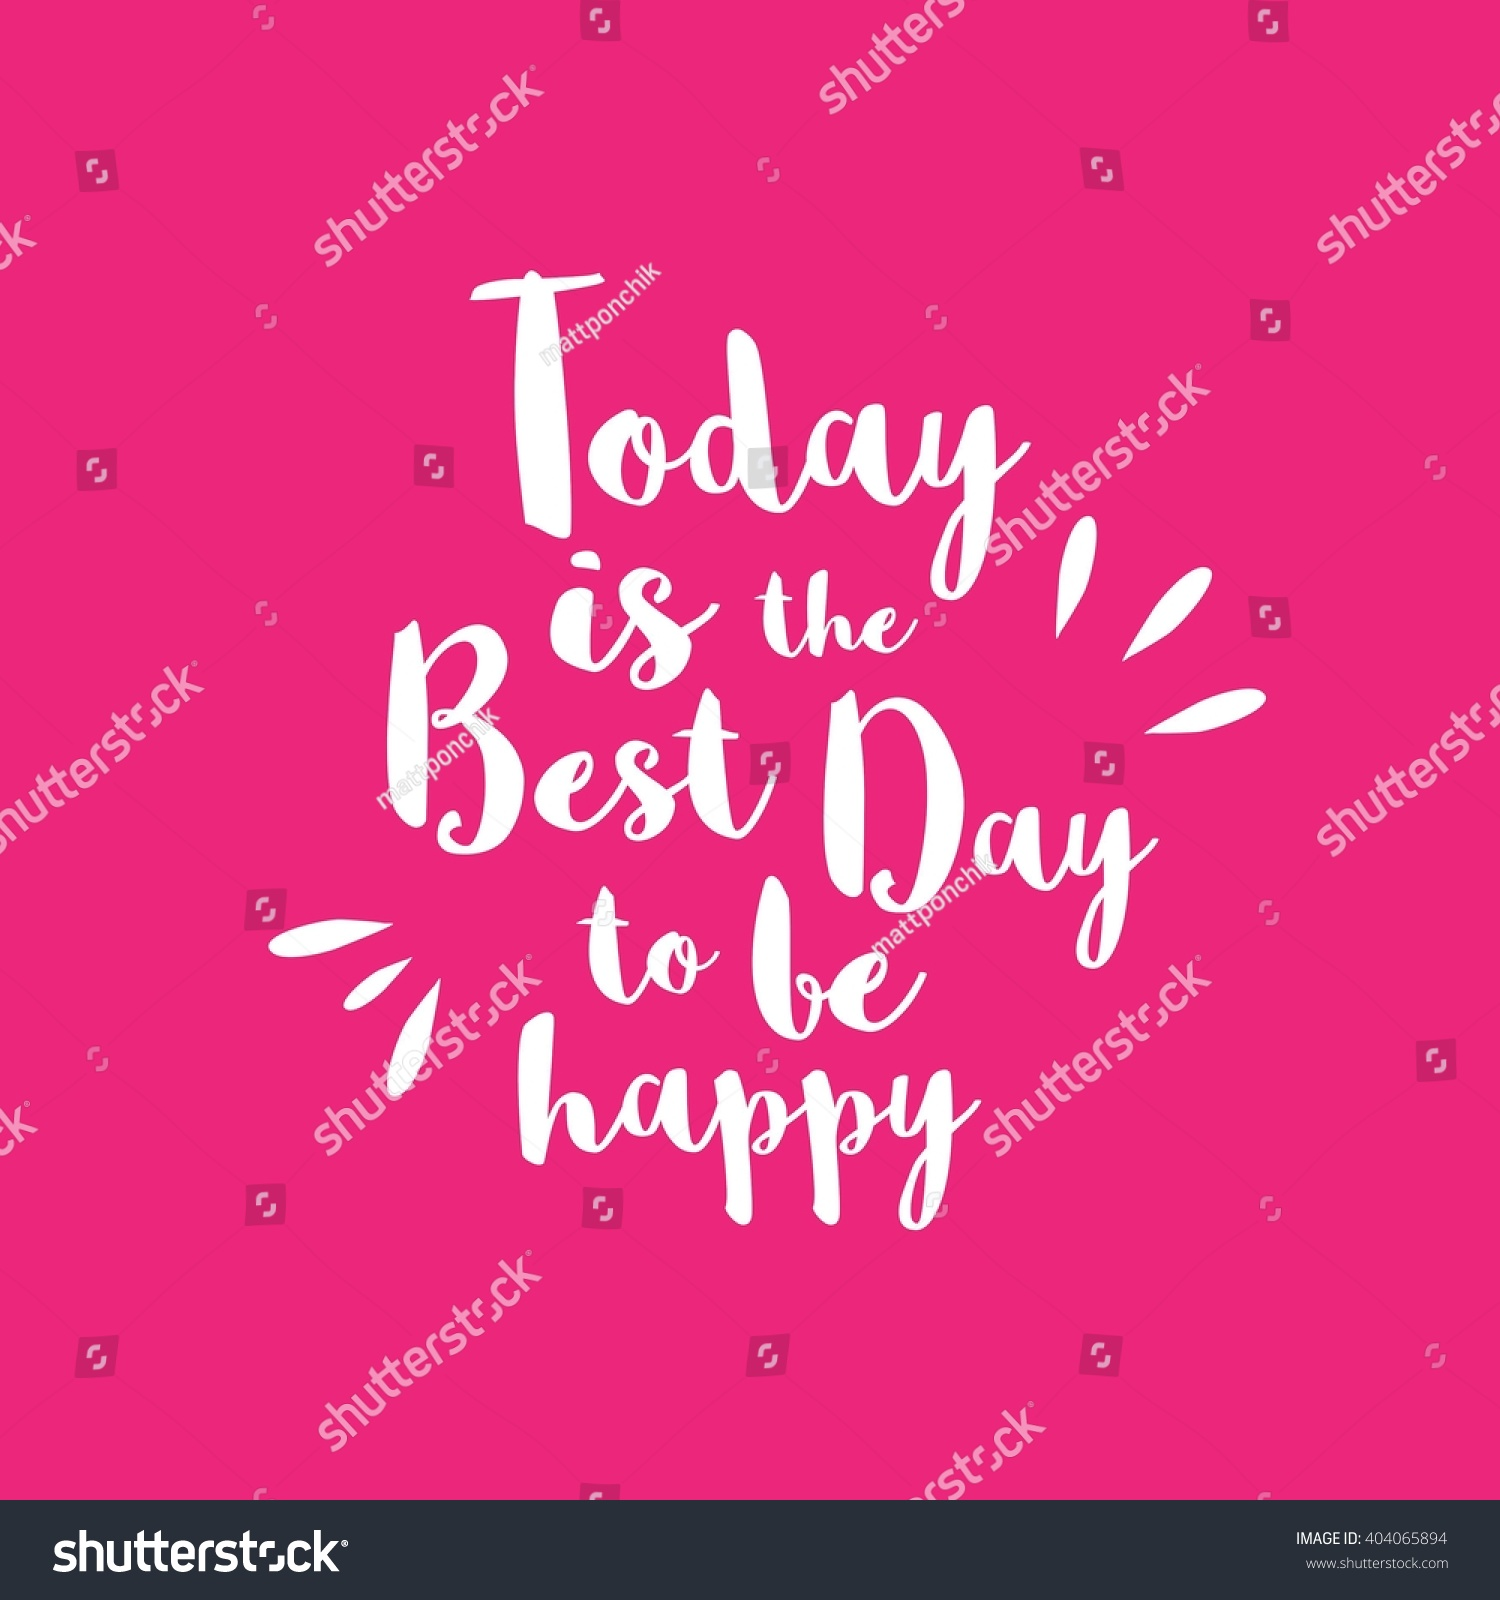 royalty happy poster postcard letter banner on  design illustration image motivational phrase today is the best day to be happy cover page design journal creative page design